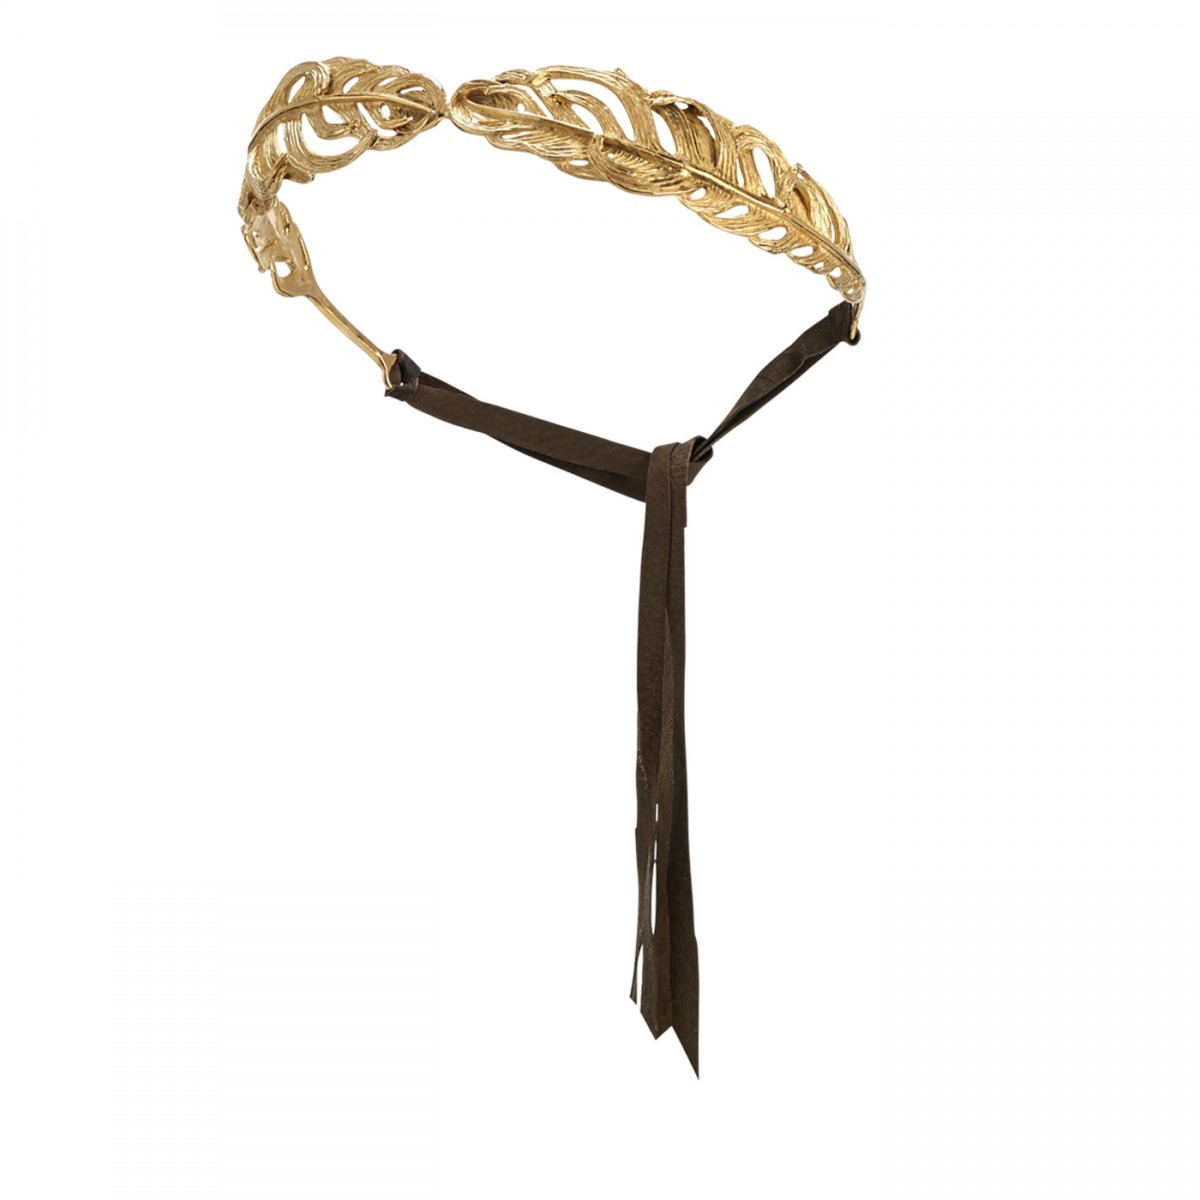 Madina Visconti – Feather Headband – Available on www.artemest.com